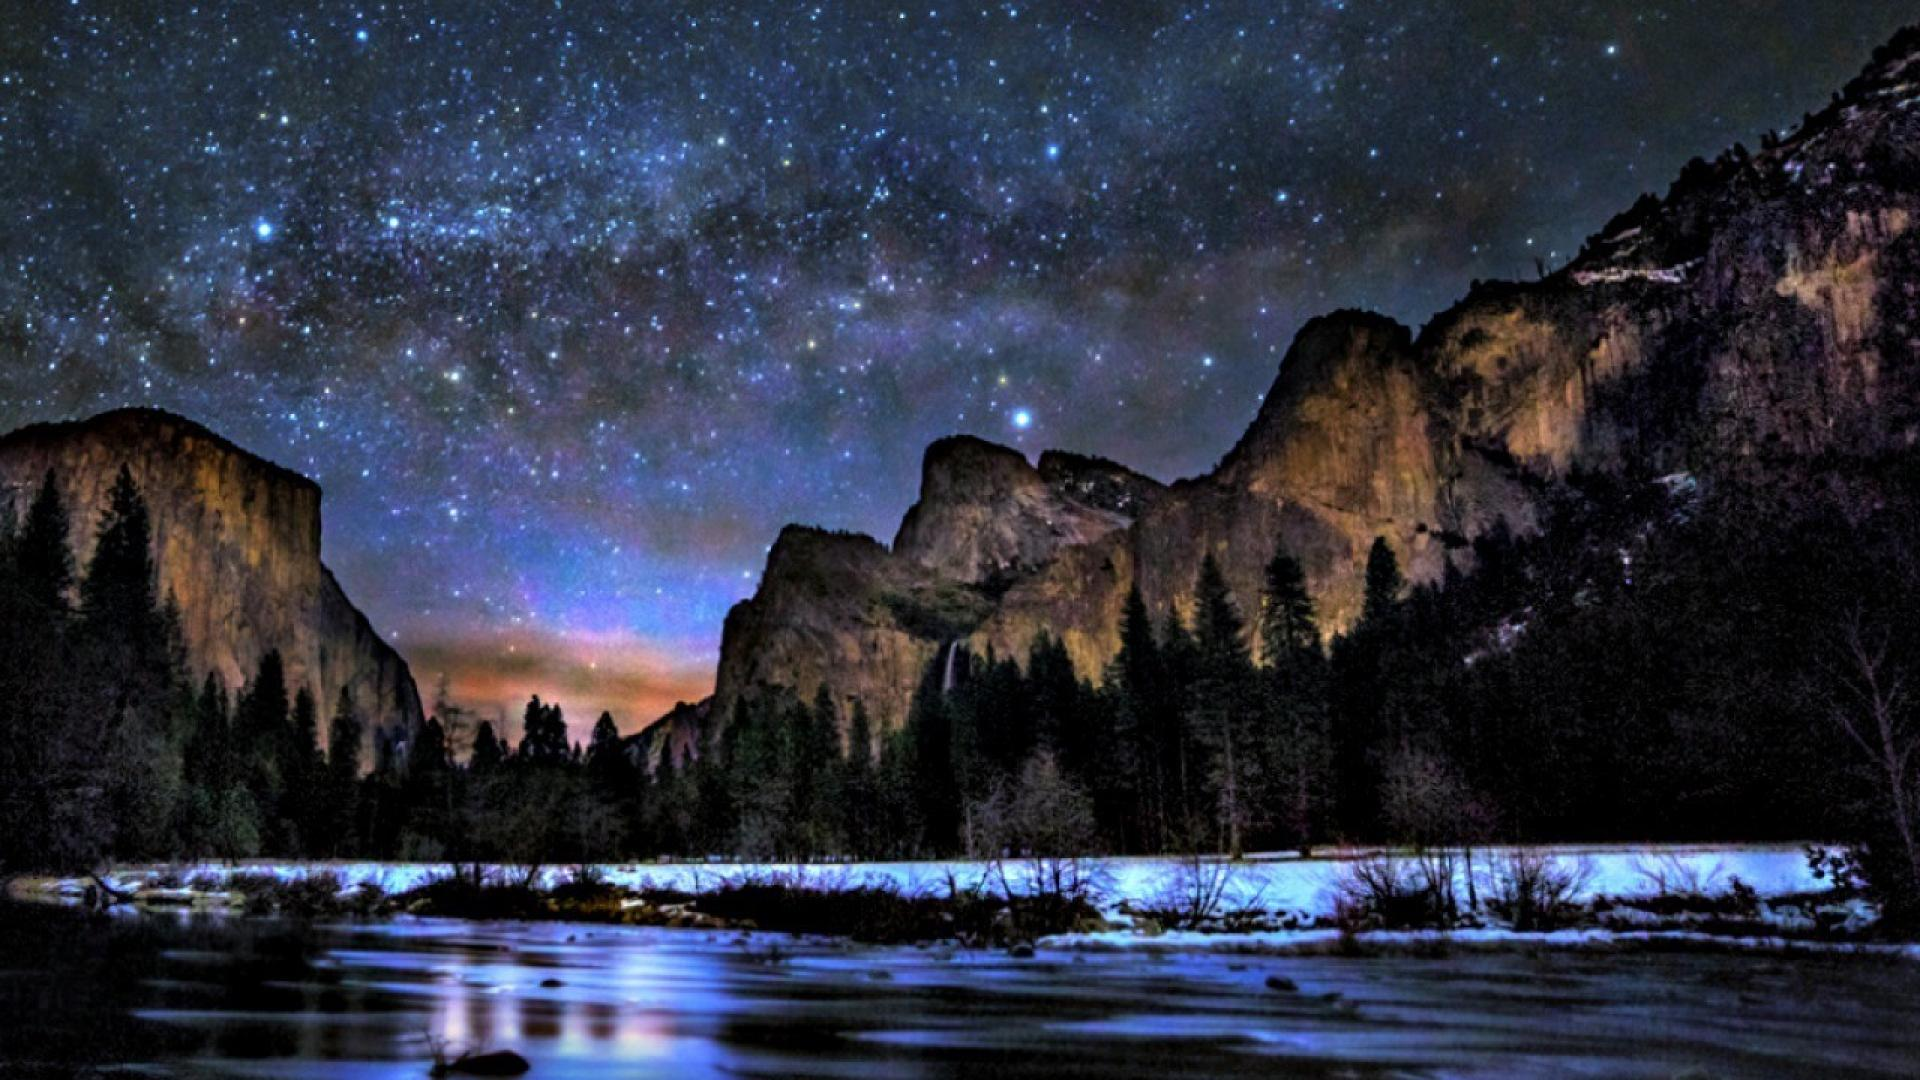 Way peaceful sky lovely yosemite national park wallpaper 65833 1920x1080